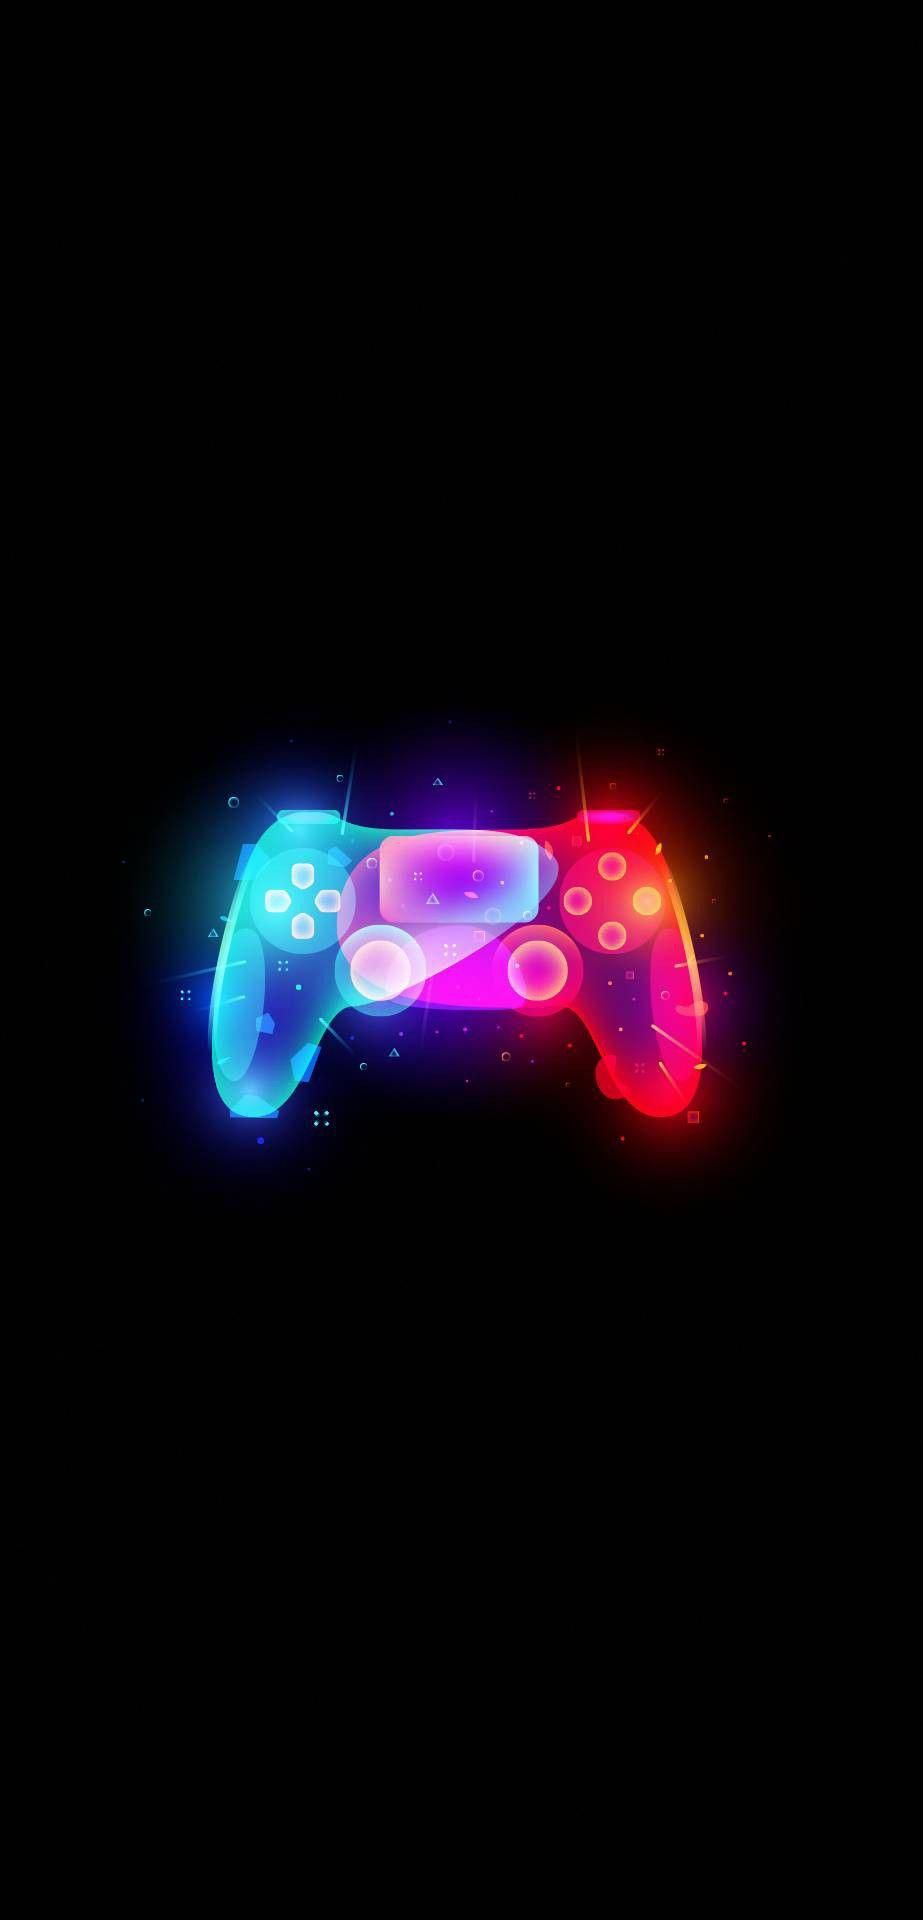 Repin If This Ps4 Controller Should Be A Playstation 5 Controller We Could Only Imagine How Amazing Thi Game Wallpaper Iphone Gaming Wallpapers Neon Wallpaper